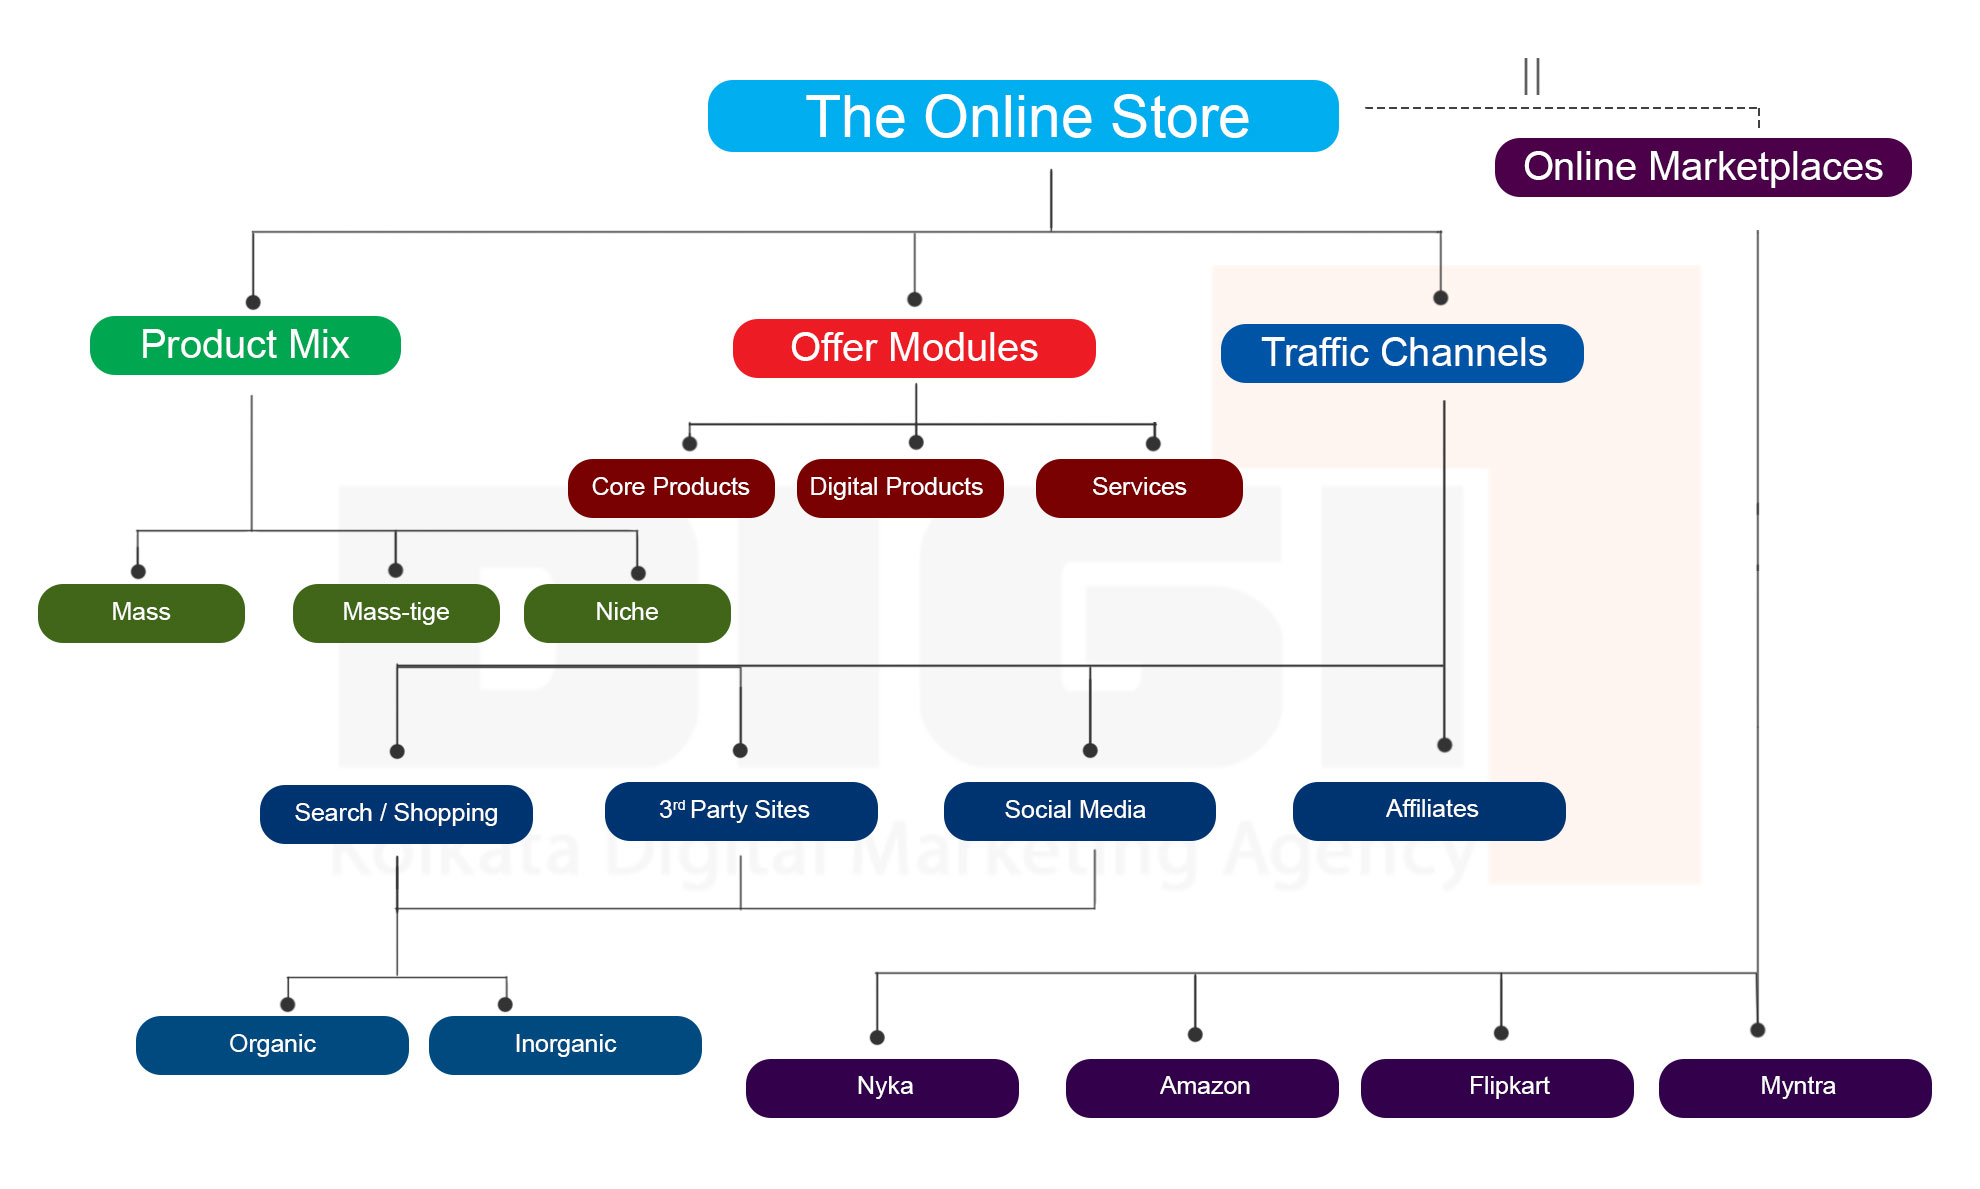 The-Online-Store-eManual-to-Sell-Products-Online---DigiT